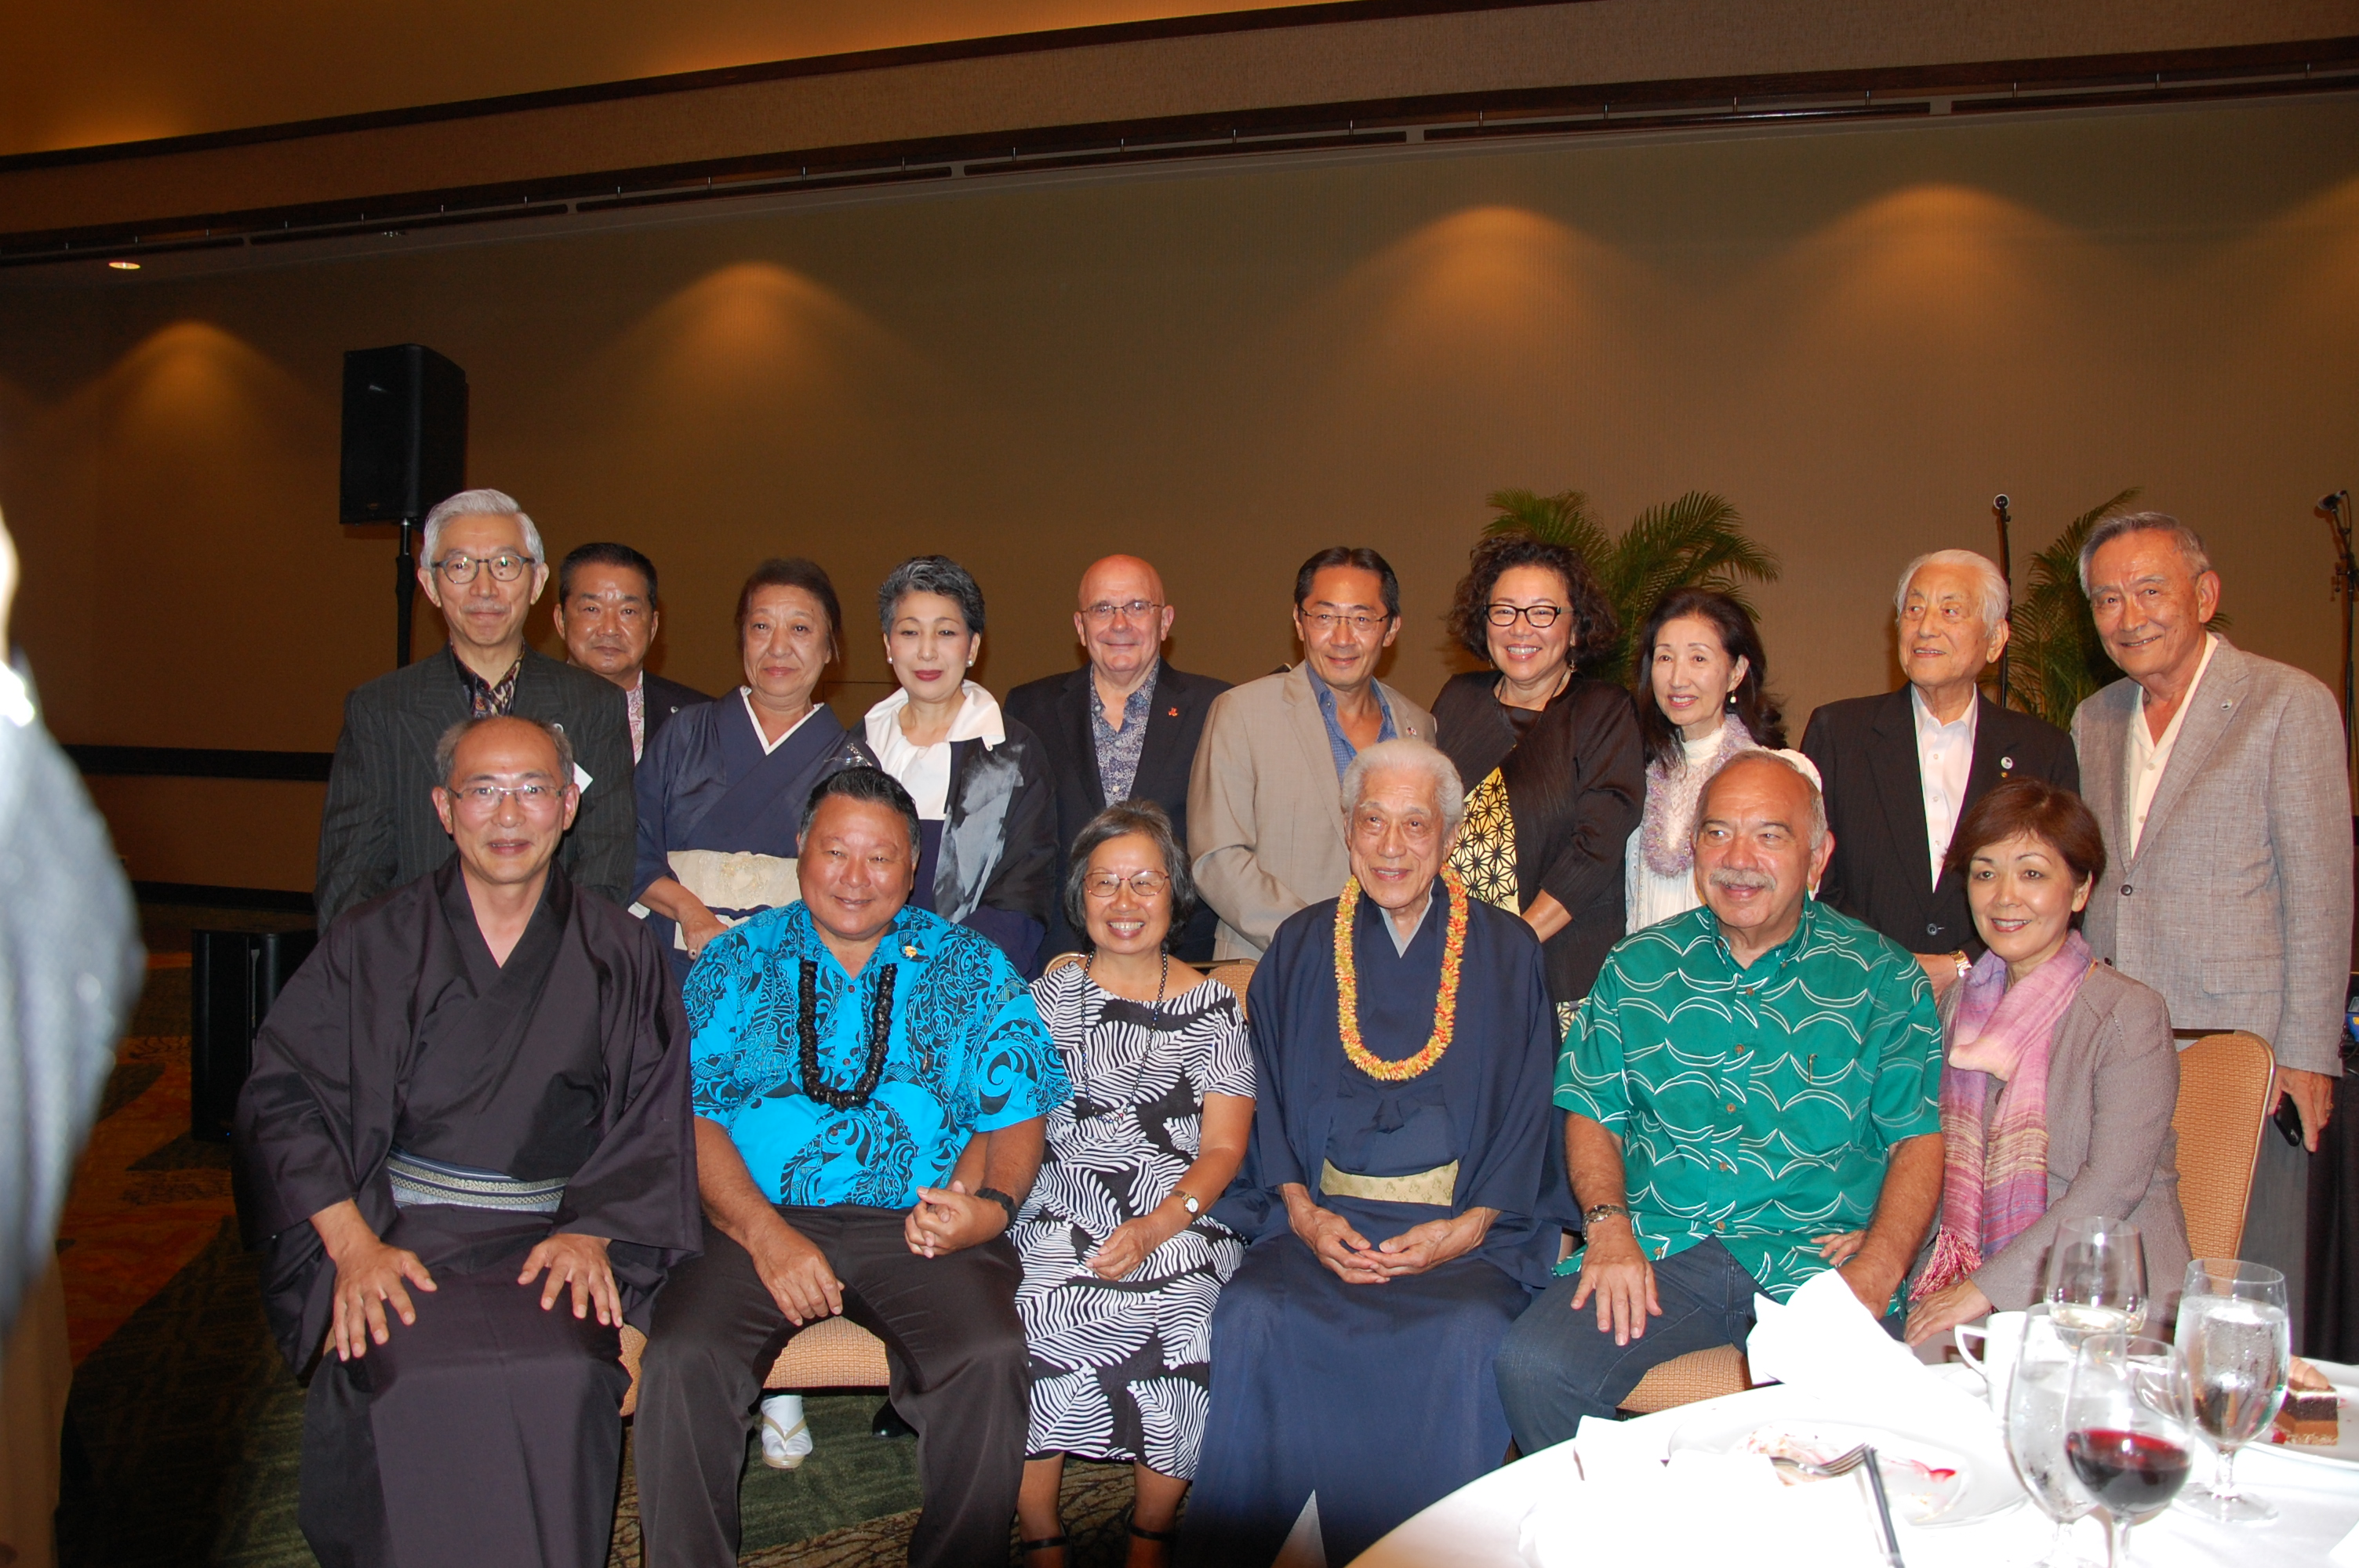 Seated: Consul General of Japan Yasushi Misawa; Maui Mayor Alan Arakawa and wife Ann; Dr. Genshitsu Sen, president of the Urasenke Foundation of Hawaii; and former Hawai'i Gov. John Waihee and wife Lynne. Standing: Former Consul General of Japan in Honolulu and current Urasenke Tankokai Federation advisor Kishichiro Amae; Dr. Sakurai; Mrs. Yukiko Sakurai, niece of Dr. Sen; Mrs. Hidemi Amae; East-West Center president Richard Vuylsteke; Japan-America Society of Hawaii board chair Sal Miwa; Japanese Cultural Center of Hawai'i board chair Christine Kubota; Misako Kurokawa; Mr. Ajito of Urasenke Japan; and Akemi Kurokawa, former president of Urasenke Tankokai Hawaii.